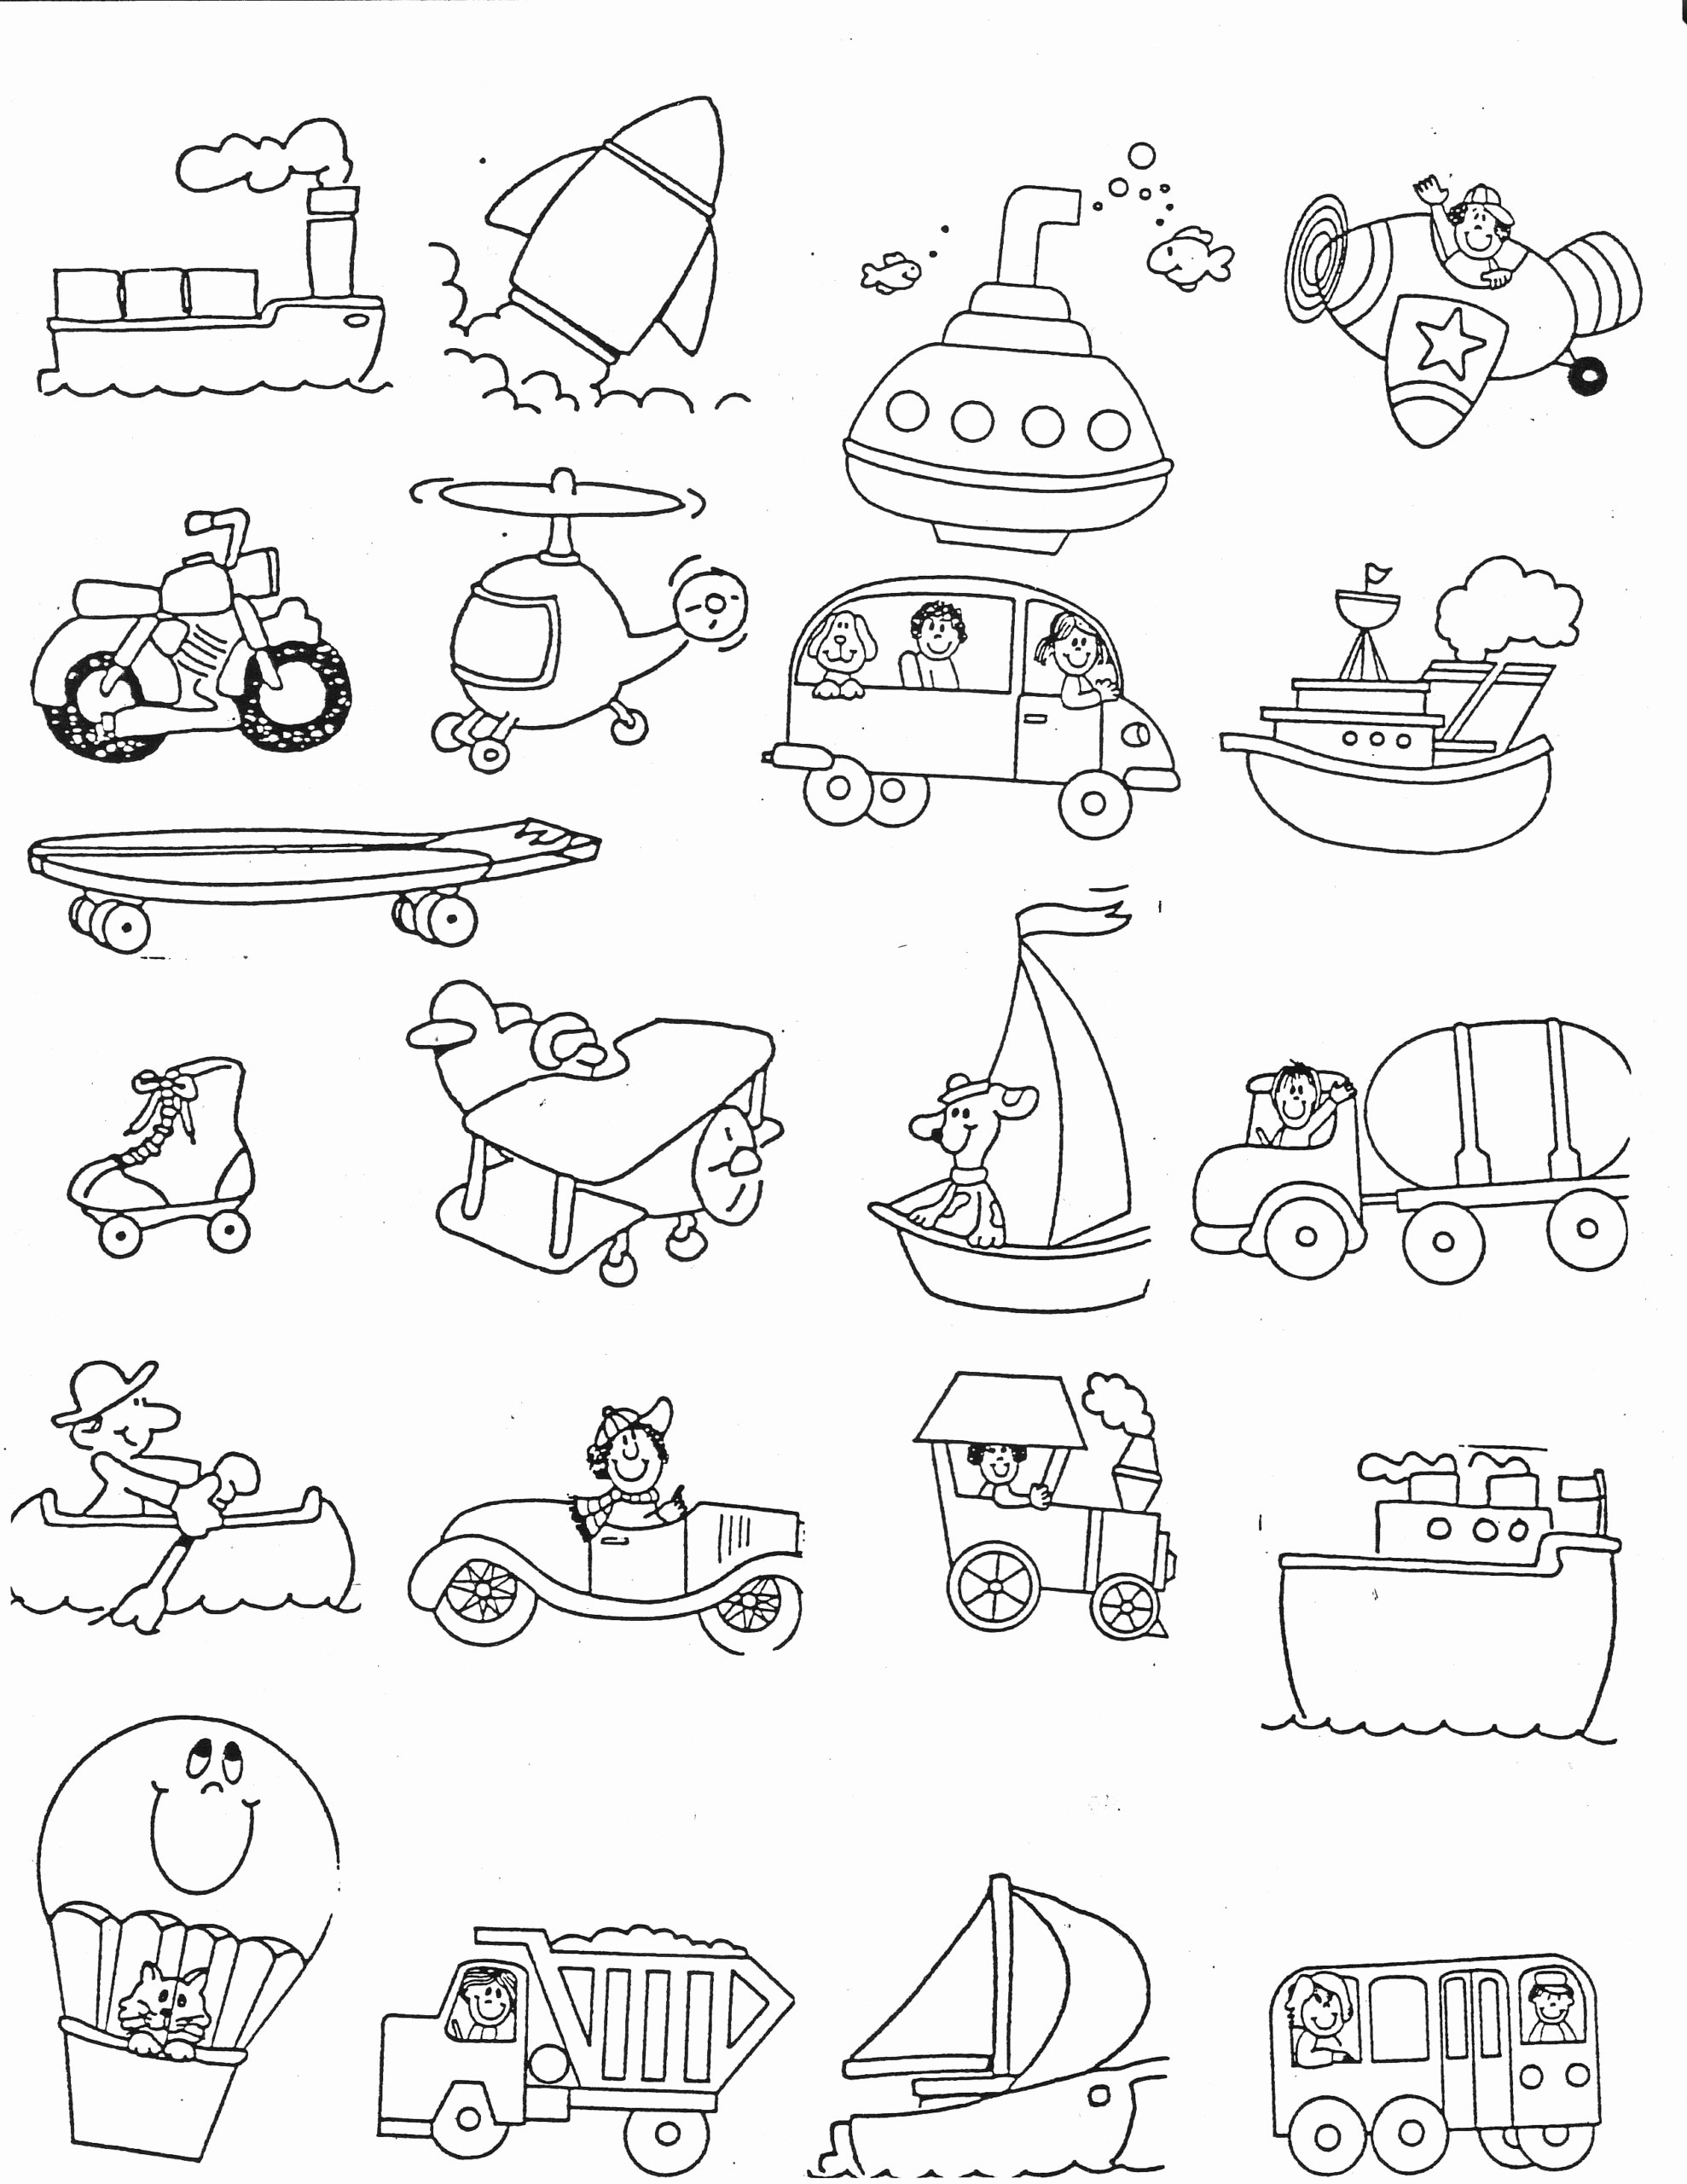 Force and Motion Kindergarten Worksheets Best Of Transportation Kindergarten Nana force and Motion Worksheets